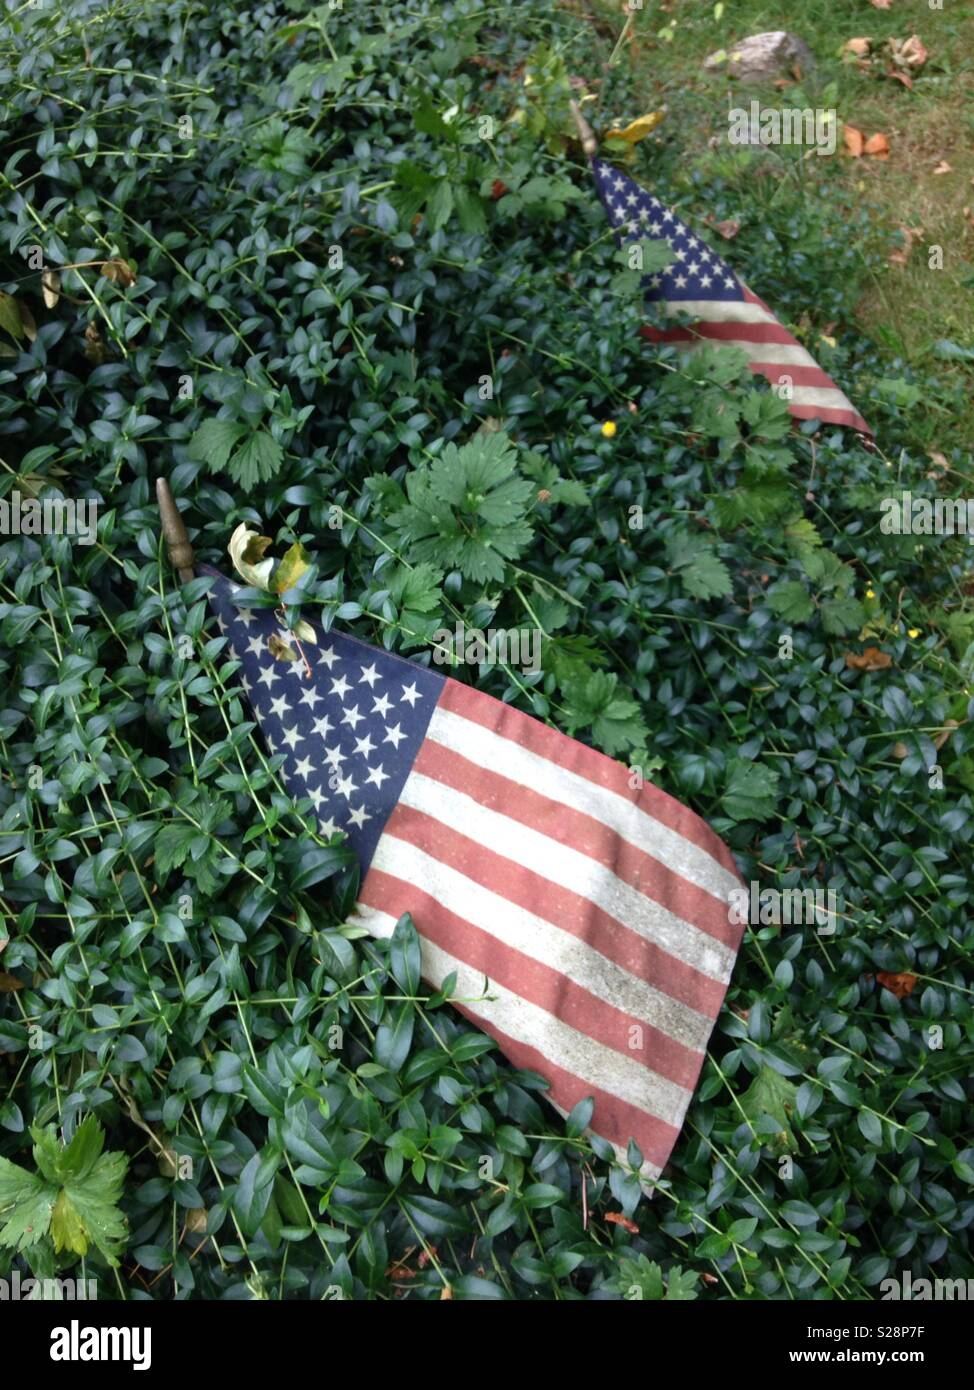 Two worn out American flags becoming overgrown by foliage, but still standing. - Stock Image